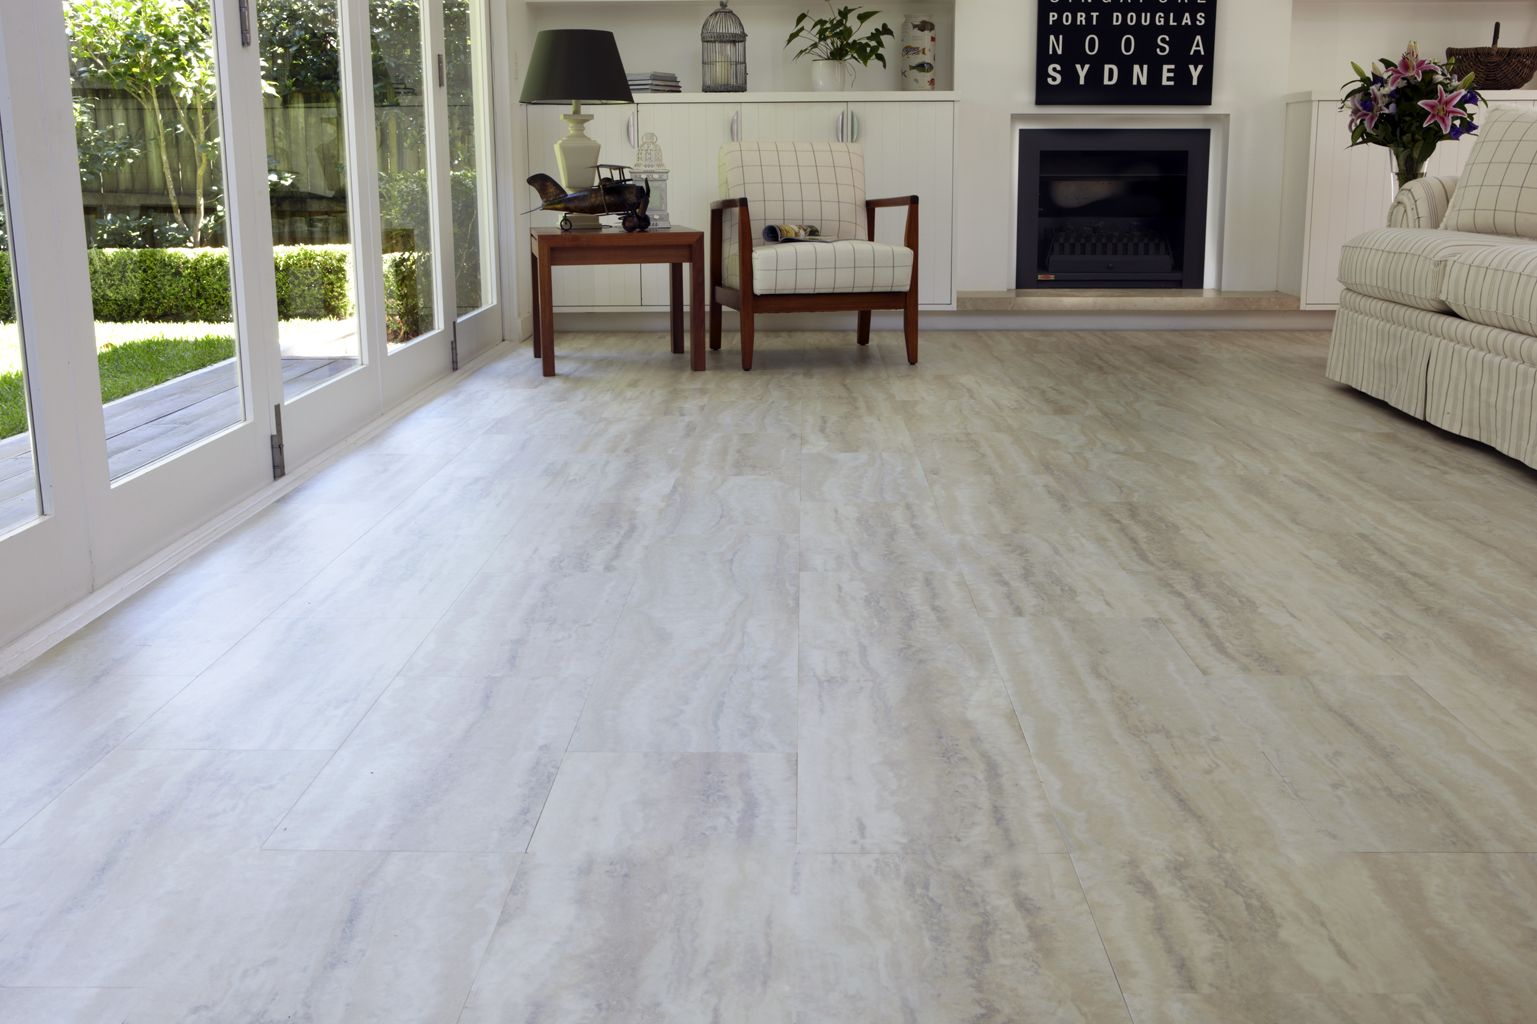 Allure locking travertine alternative setting rrp 59 m2 allure locking travertine alternative setting rrp 59 m2 dailygadgetfo Image collections